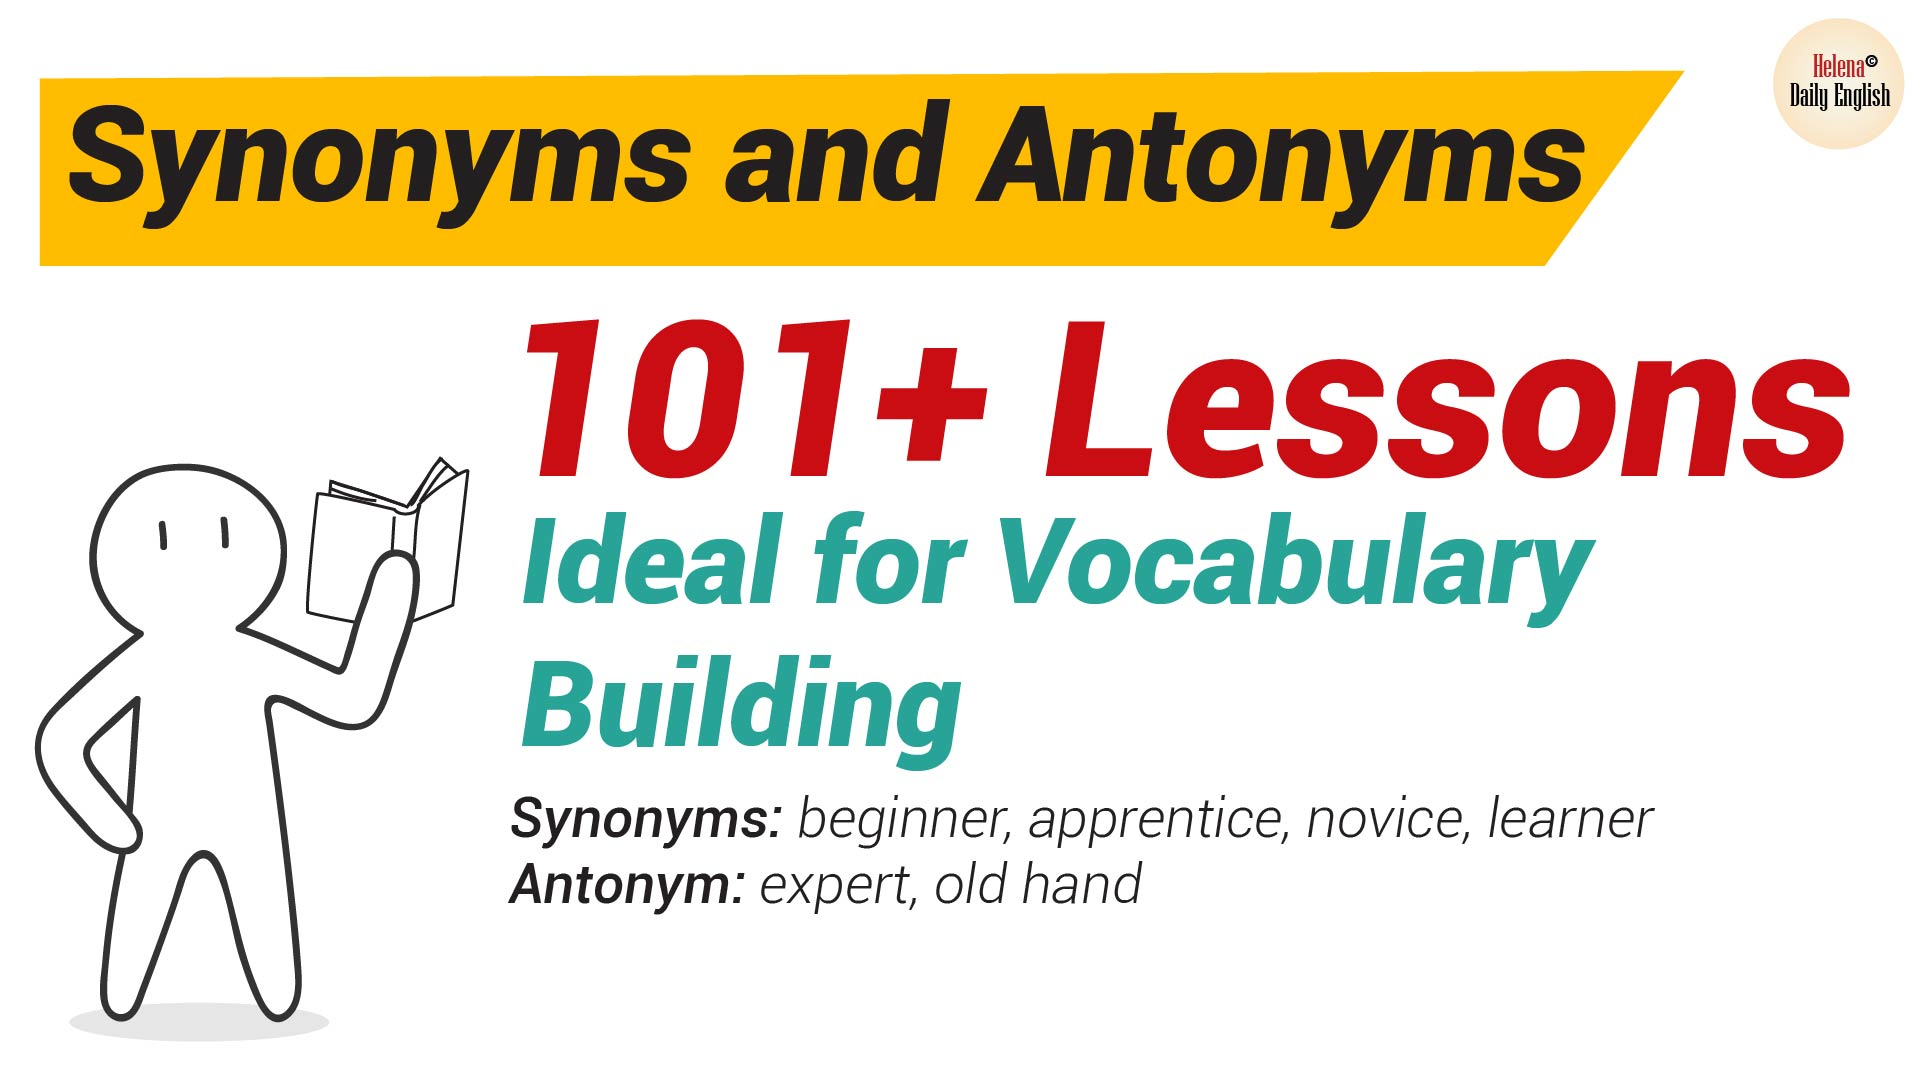 Synonyms and Antonyms Dictionary 101 lessons-01